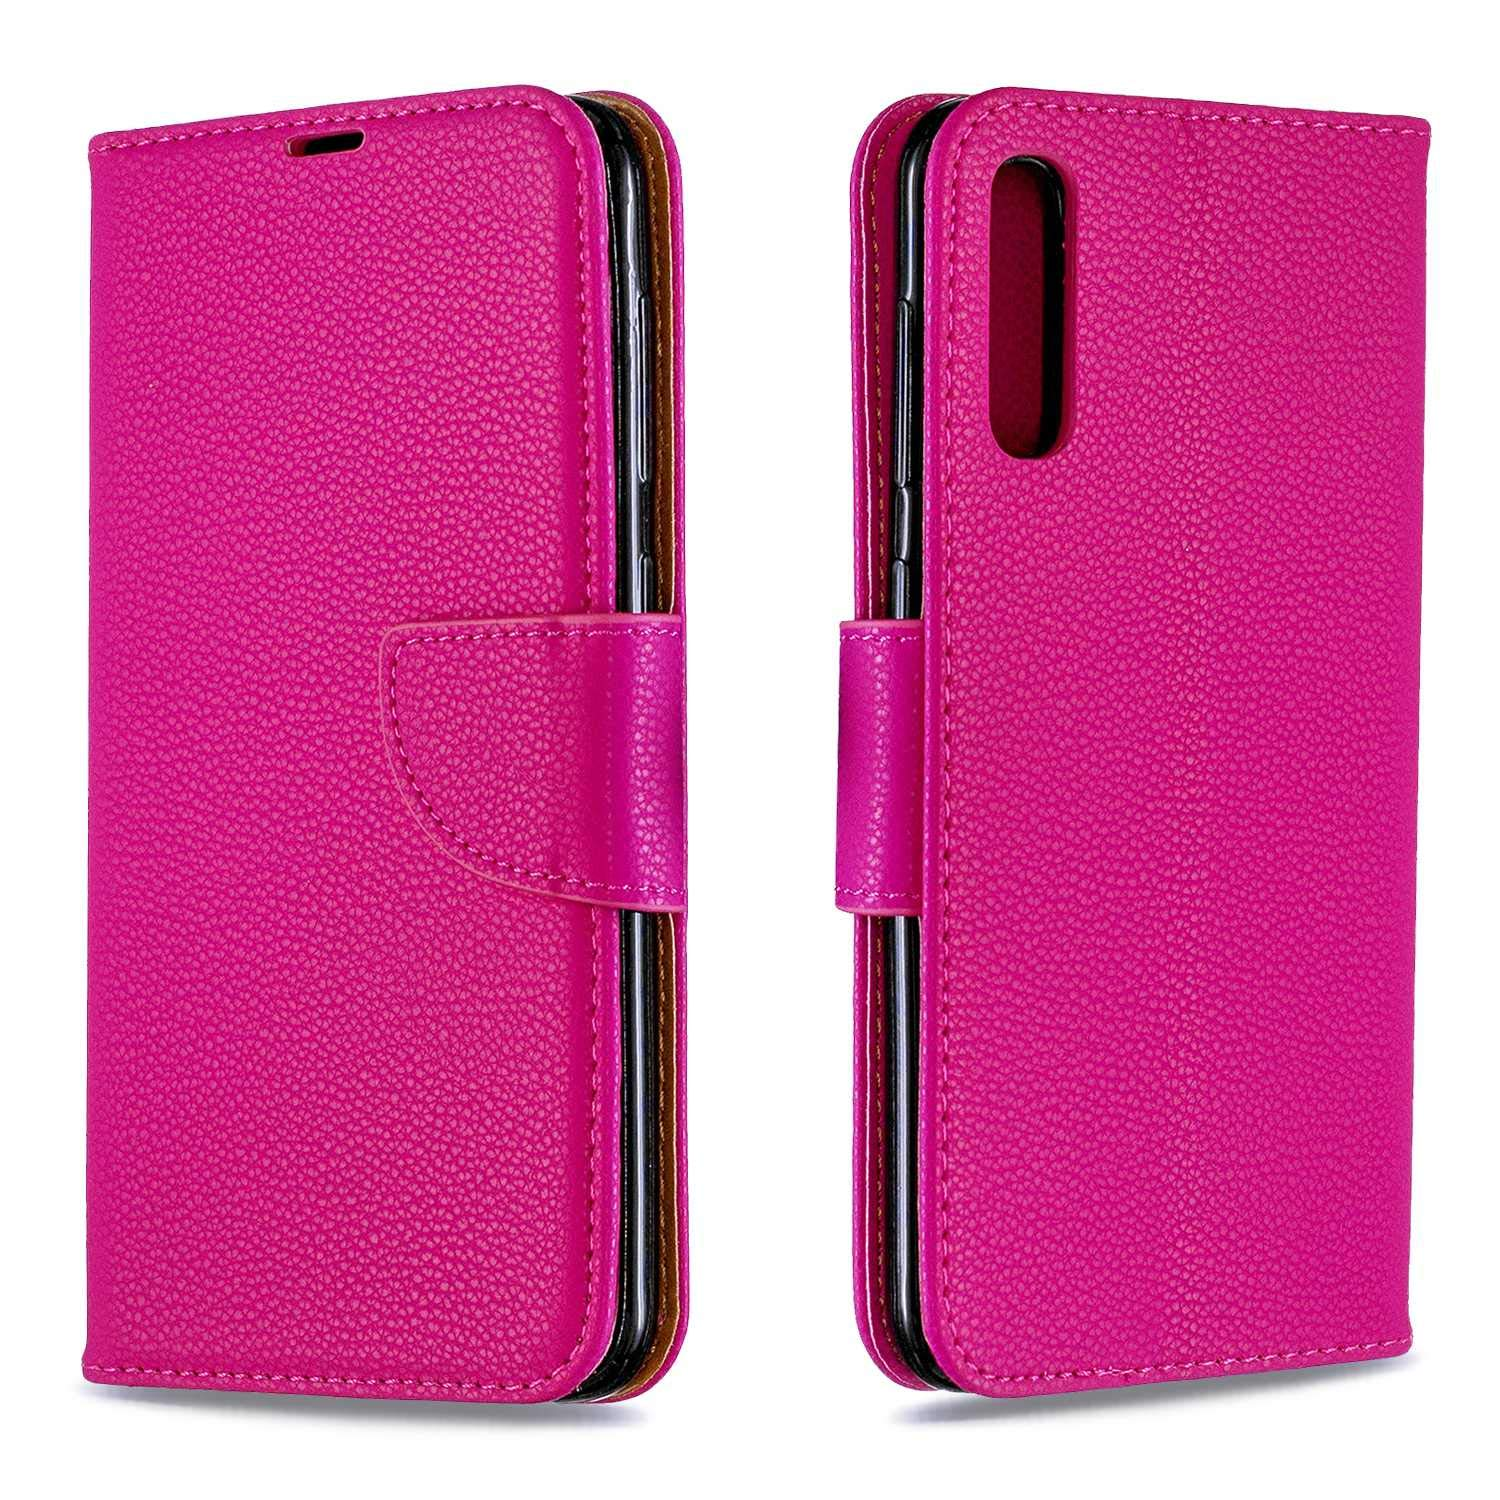 Galaxy A50 Case, Bear Village Premium PU Wallet Protective Case with Kickstand Function, Wrist Strap and Card Slots for Samsung Galaxy A50, Rose Red by Bear Village